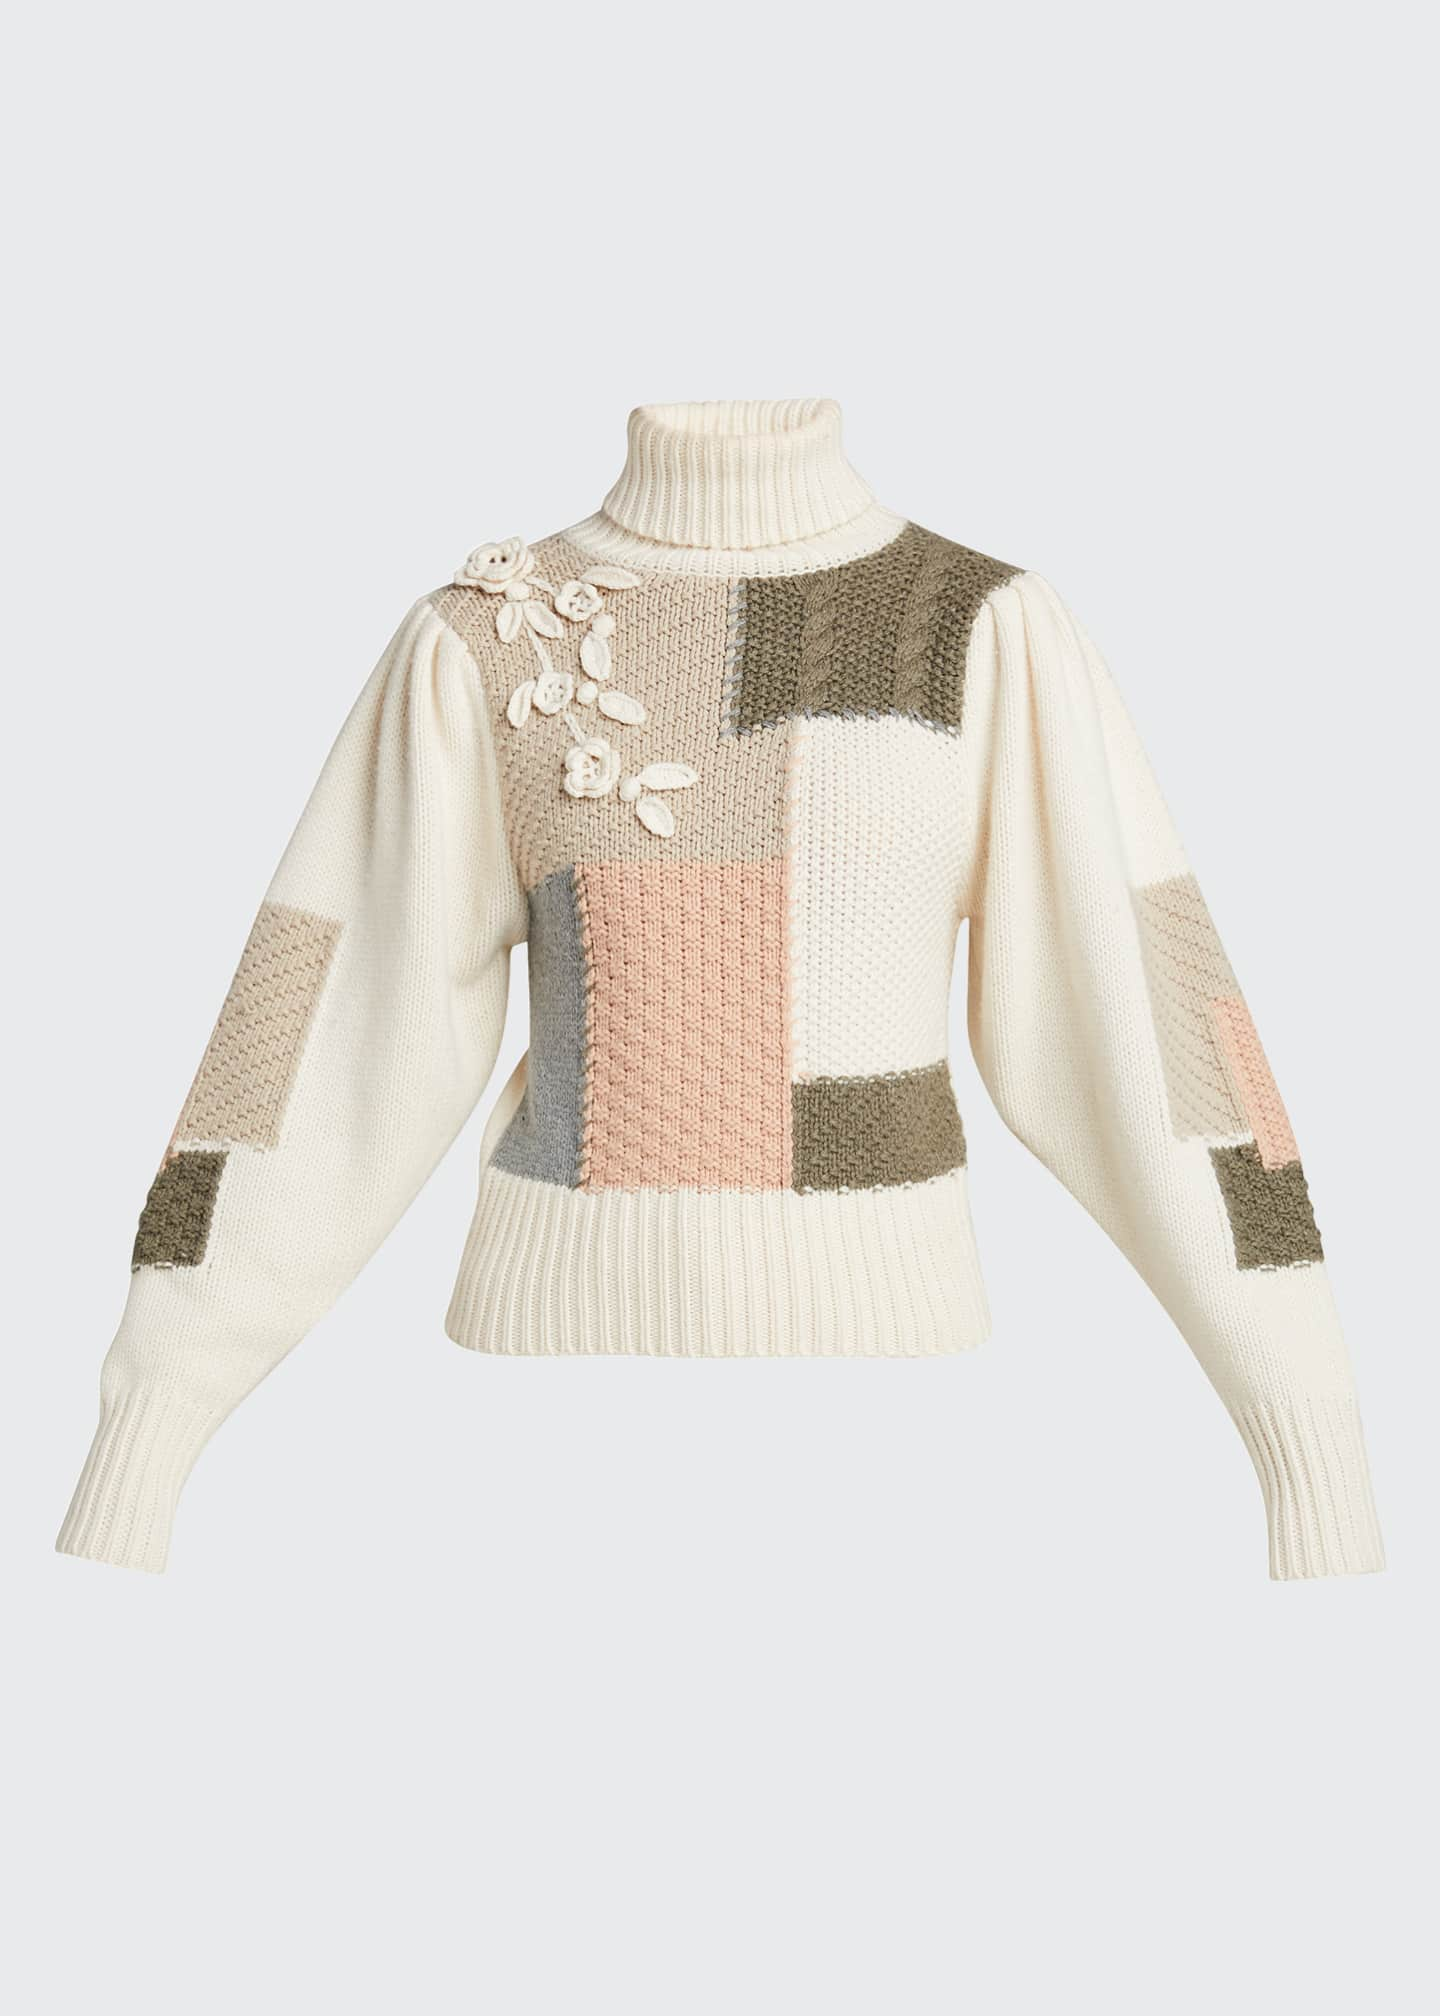 Image 5 of 5: Allan Patchwork Floral Applique Knit Sweater